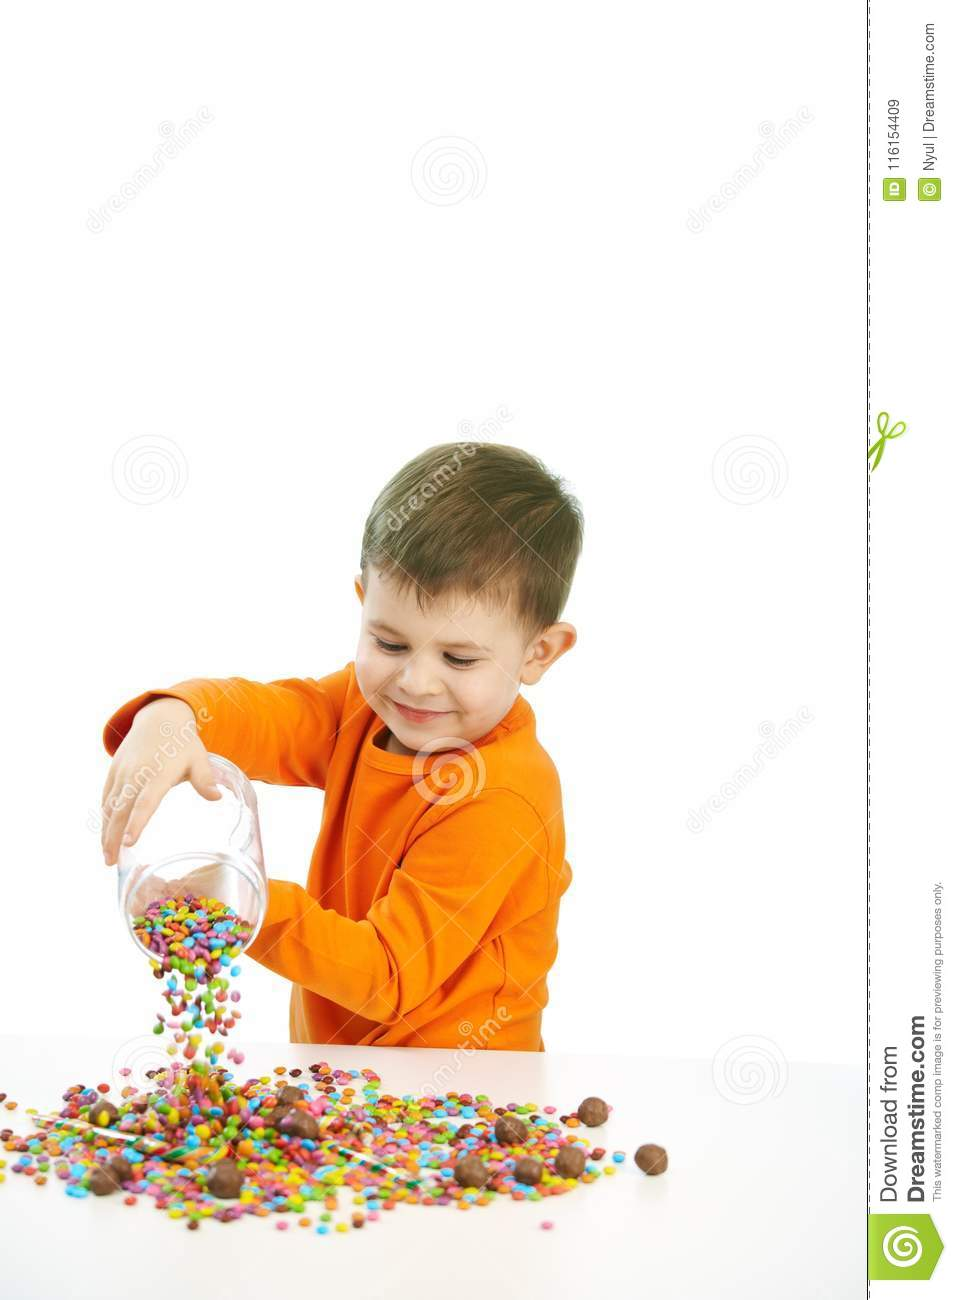 Little boy eating sweets